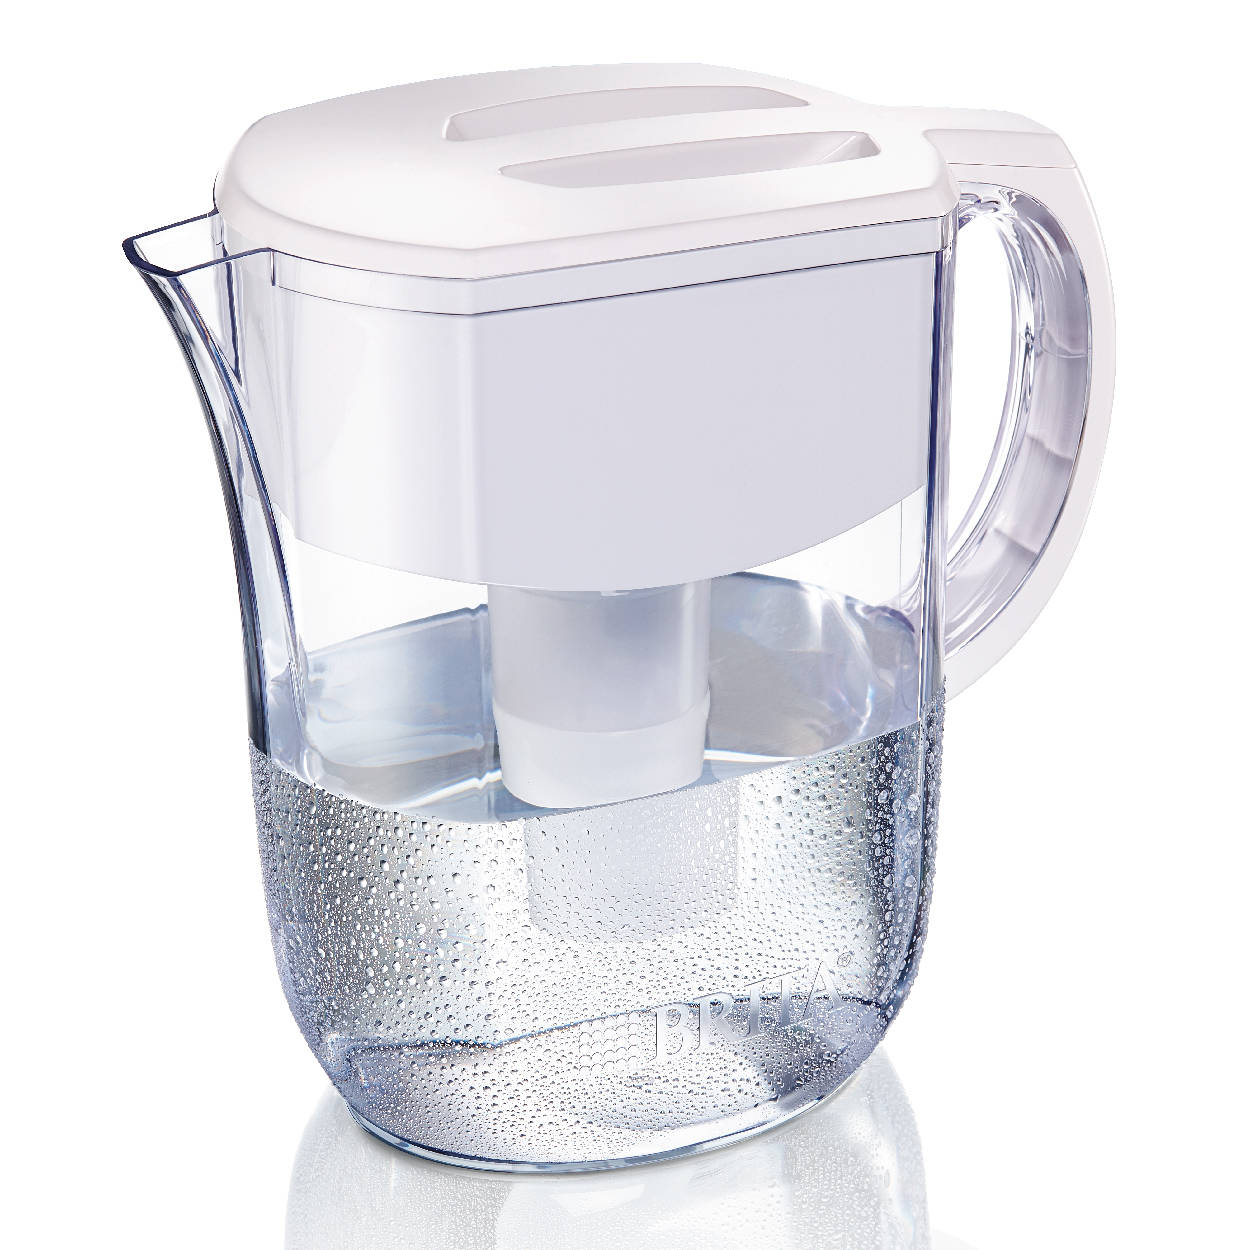 brita classic water filter jug instructions